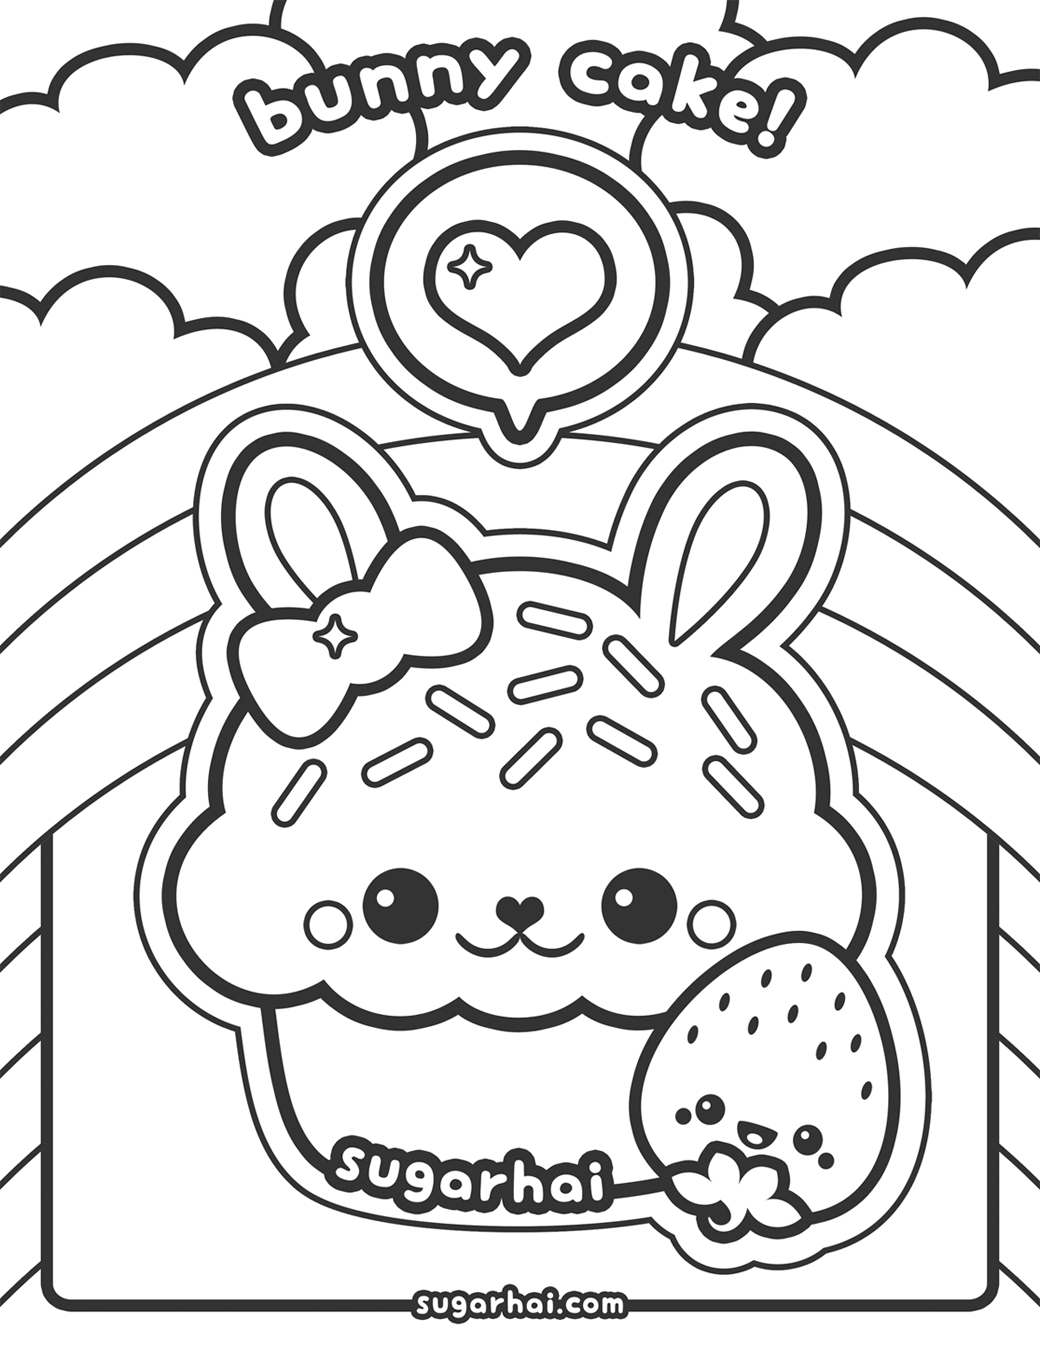 Easter bunny ears coloring pages download and print for free ... | 1346x1040